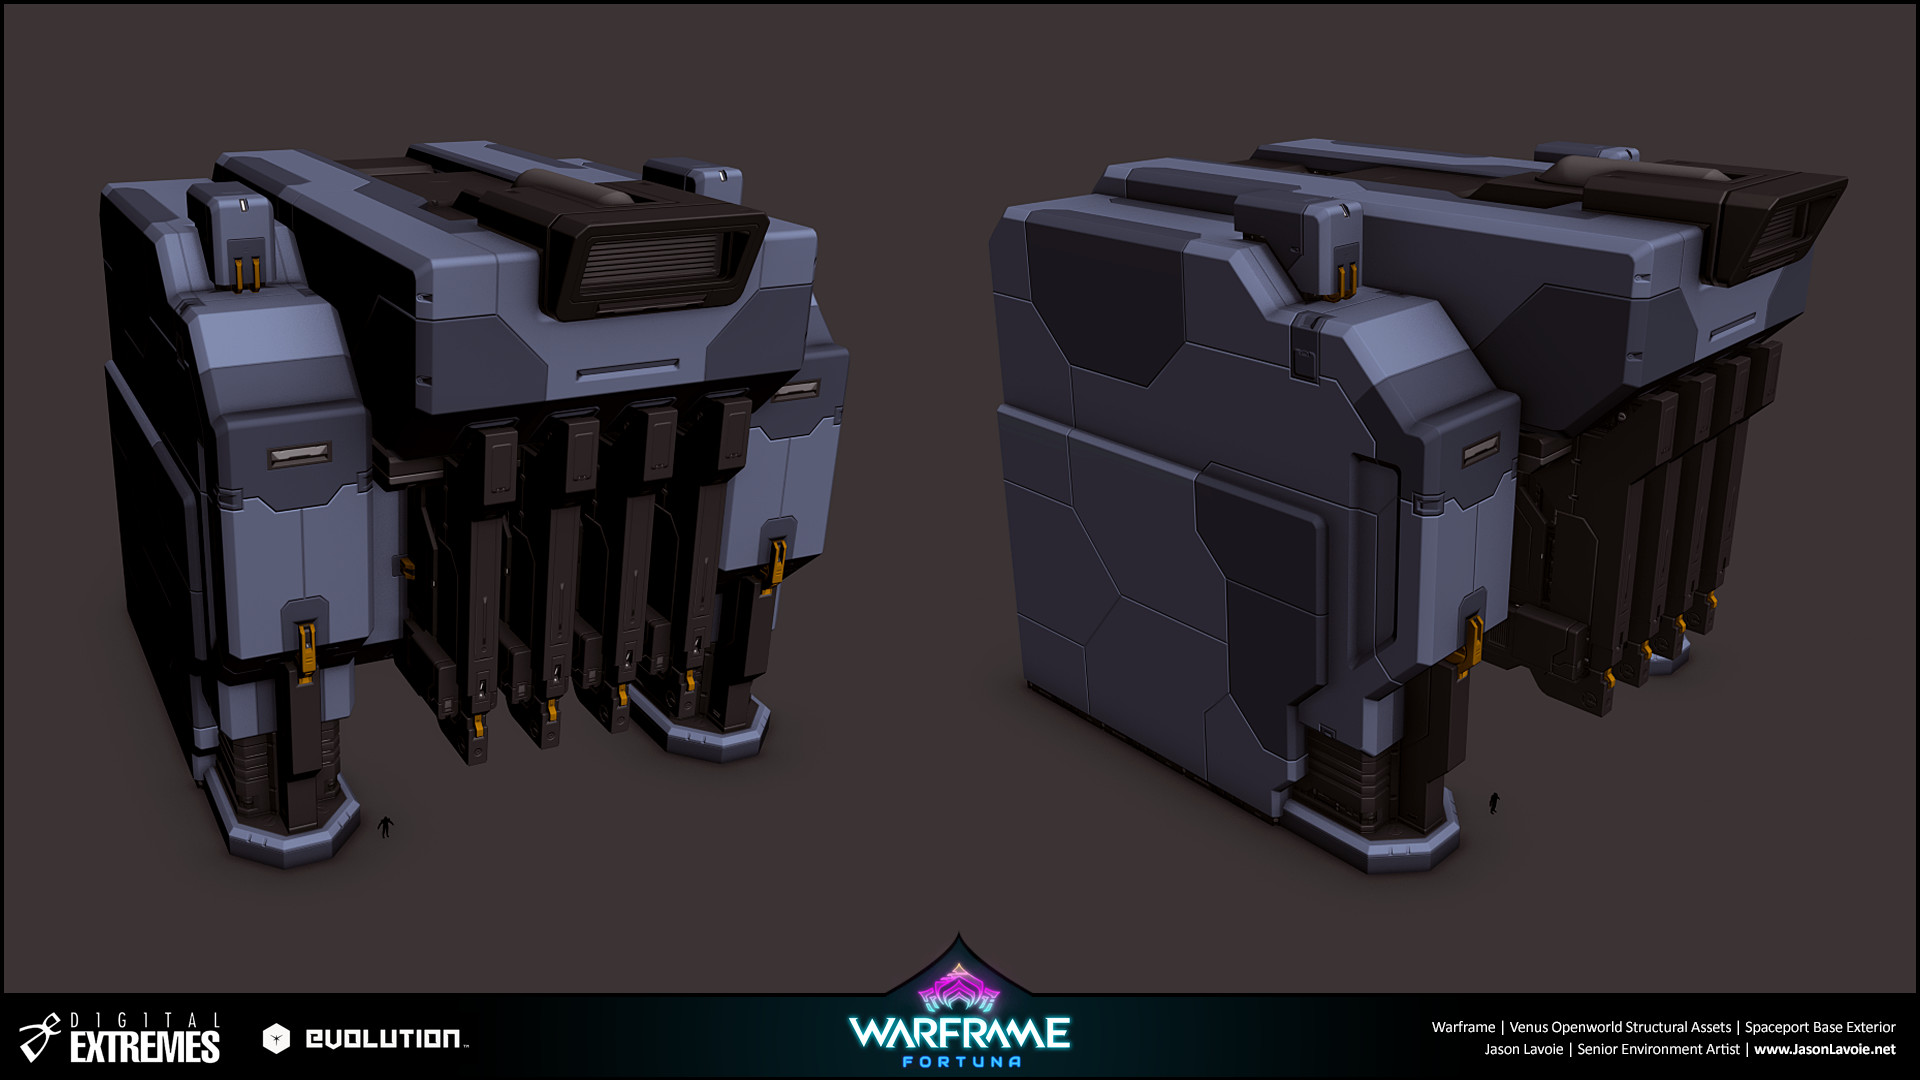 Jason lavoie jasonlavoie warframefortuna spaceportbaseexterior 3dmax buildingbase